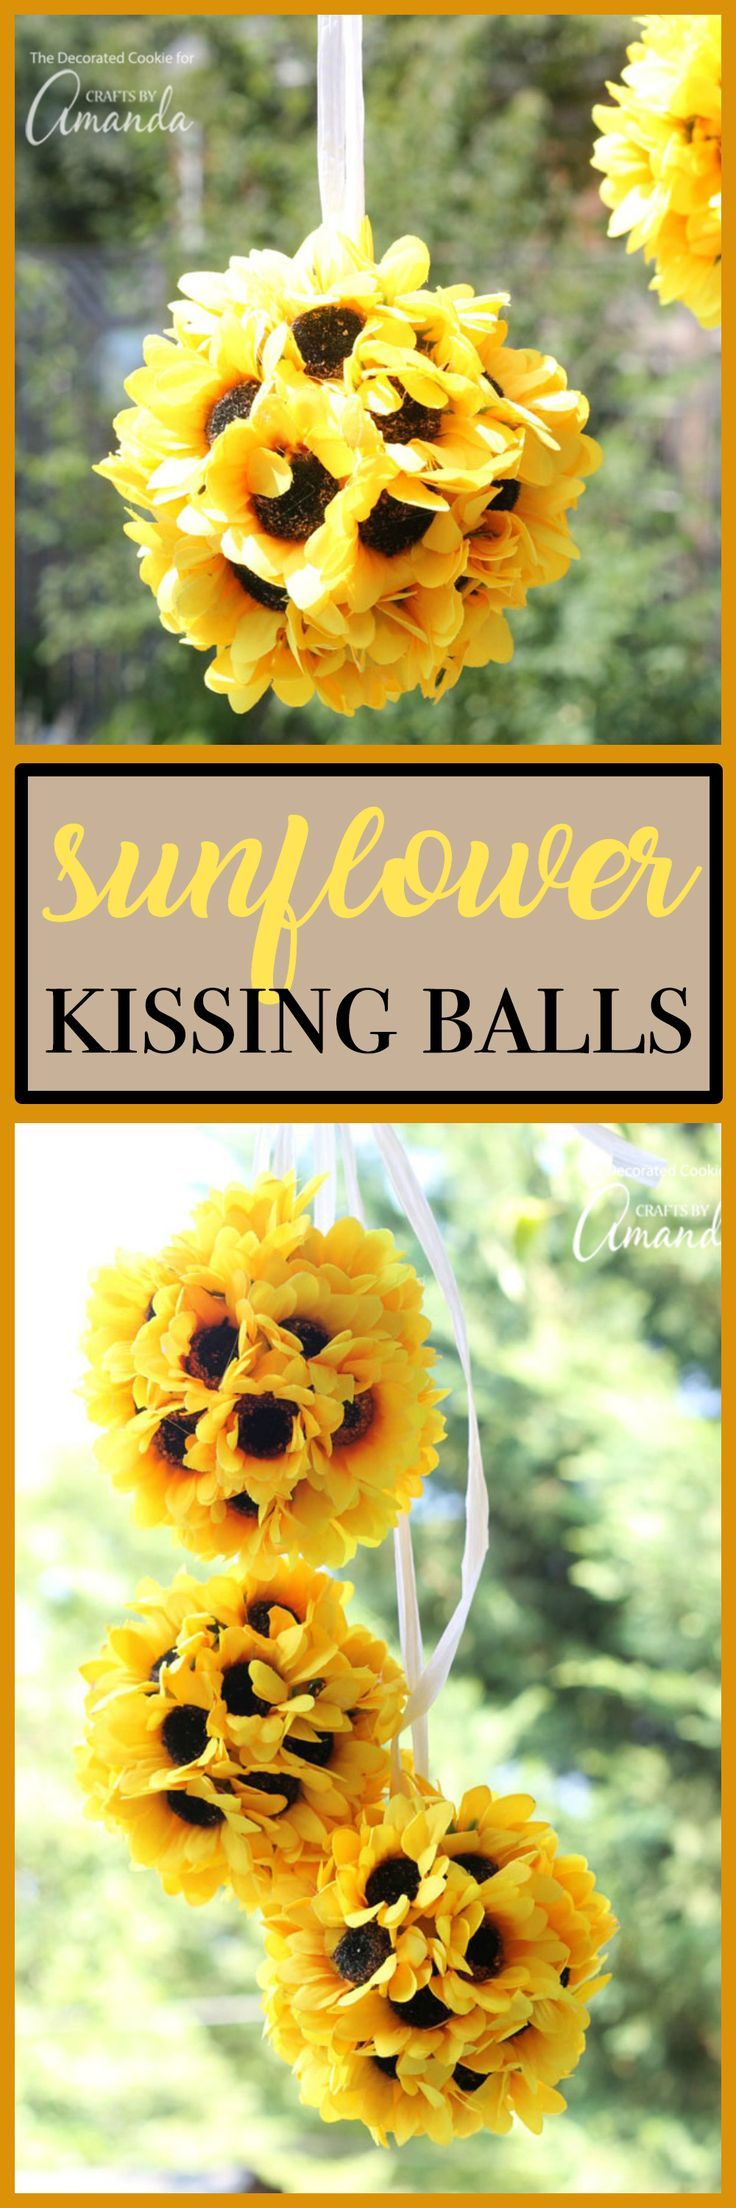 These sunflower kissing balls would make the perfect addition to any wedding, bridal shower, baby shower, party, or to hang in your home or porch!